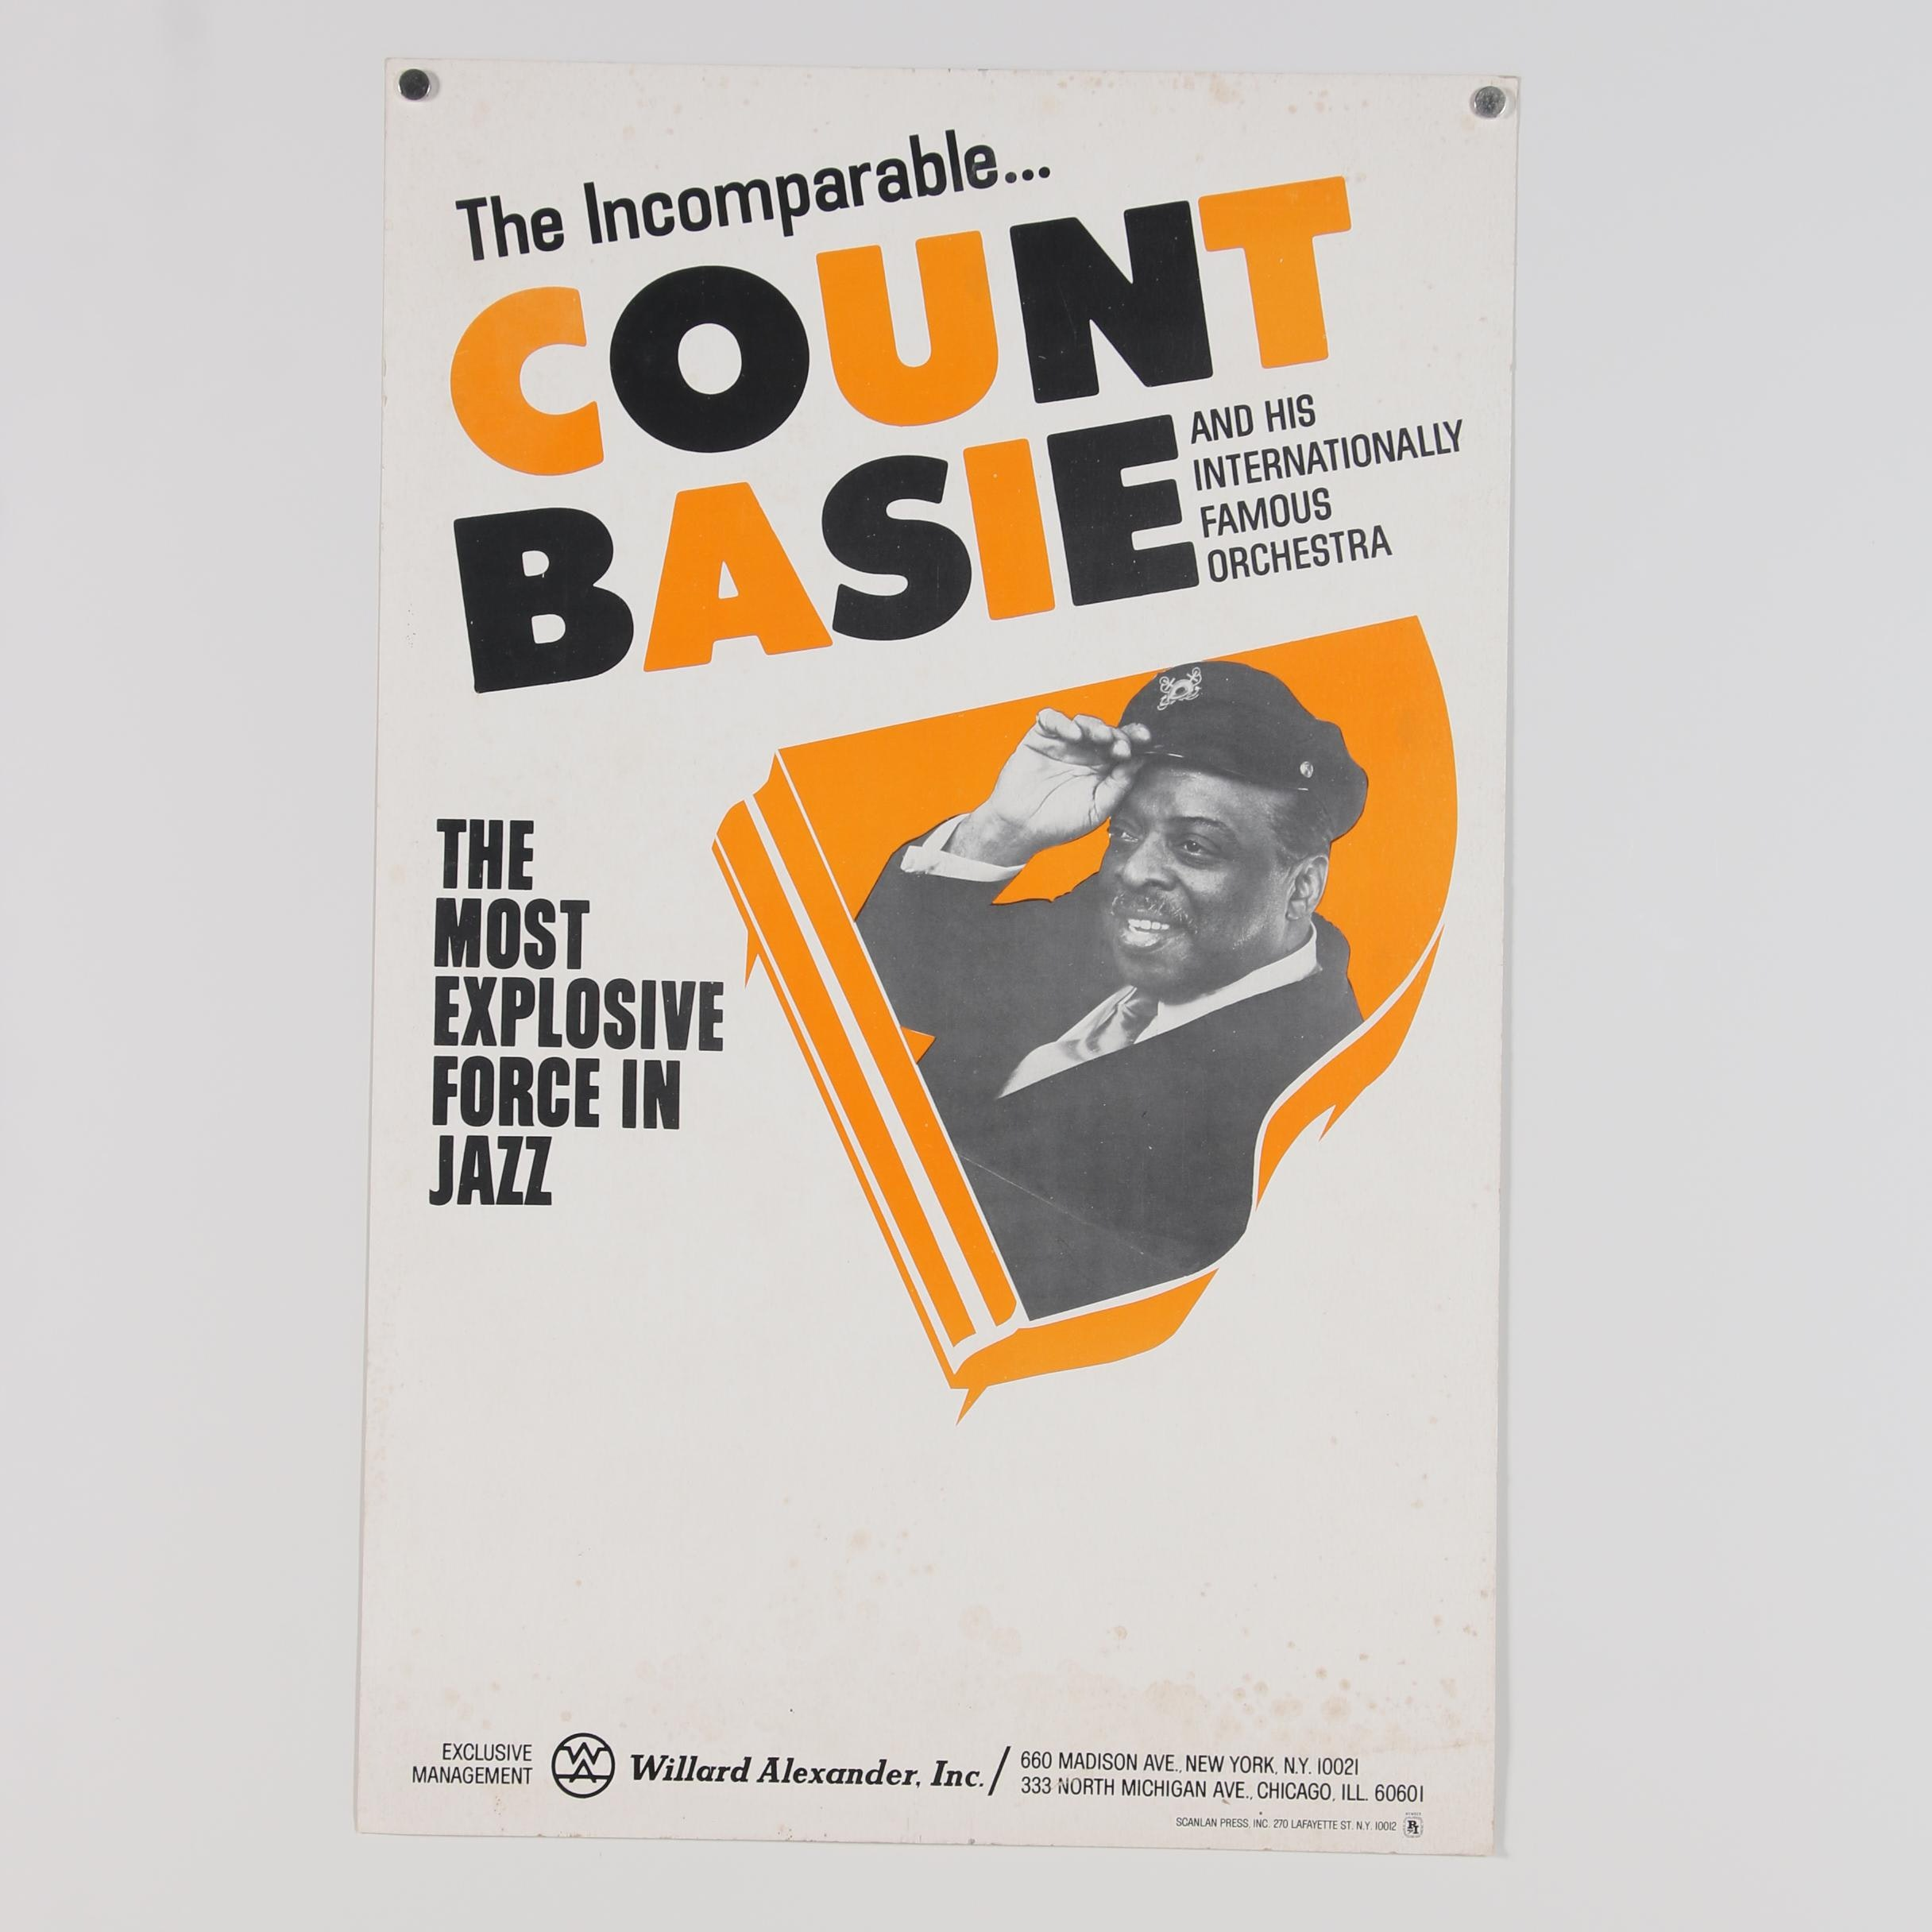 Count Basie Promotional Poster, 1975